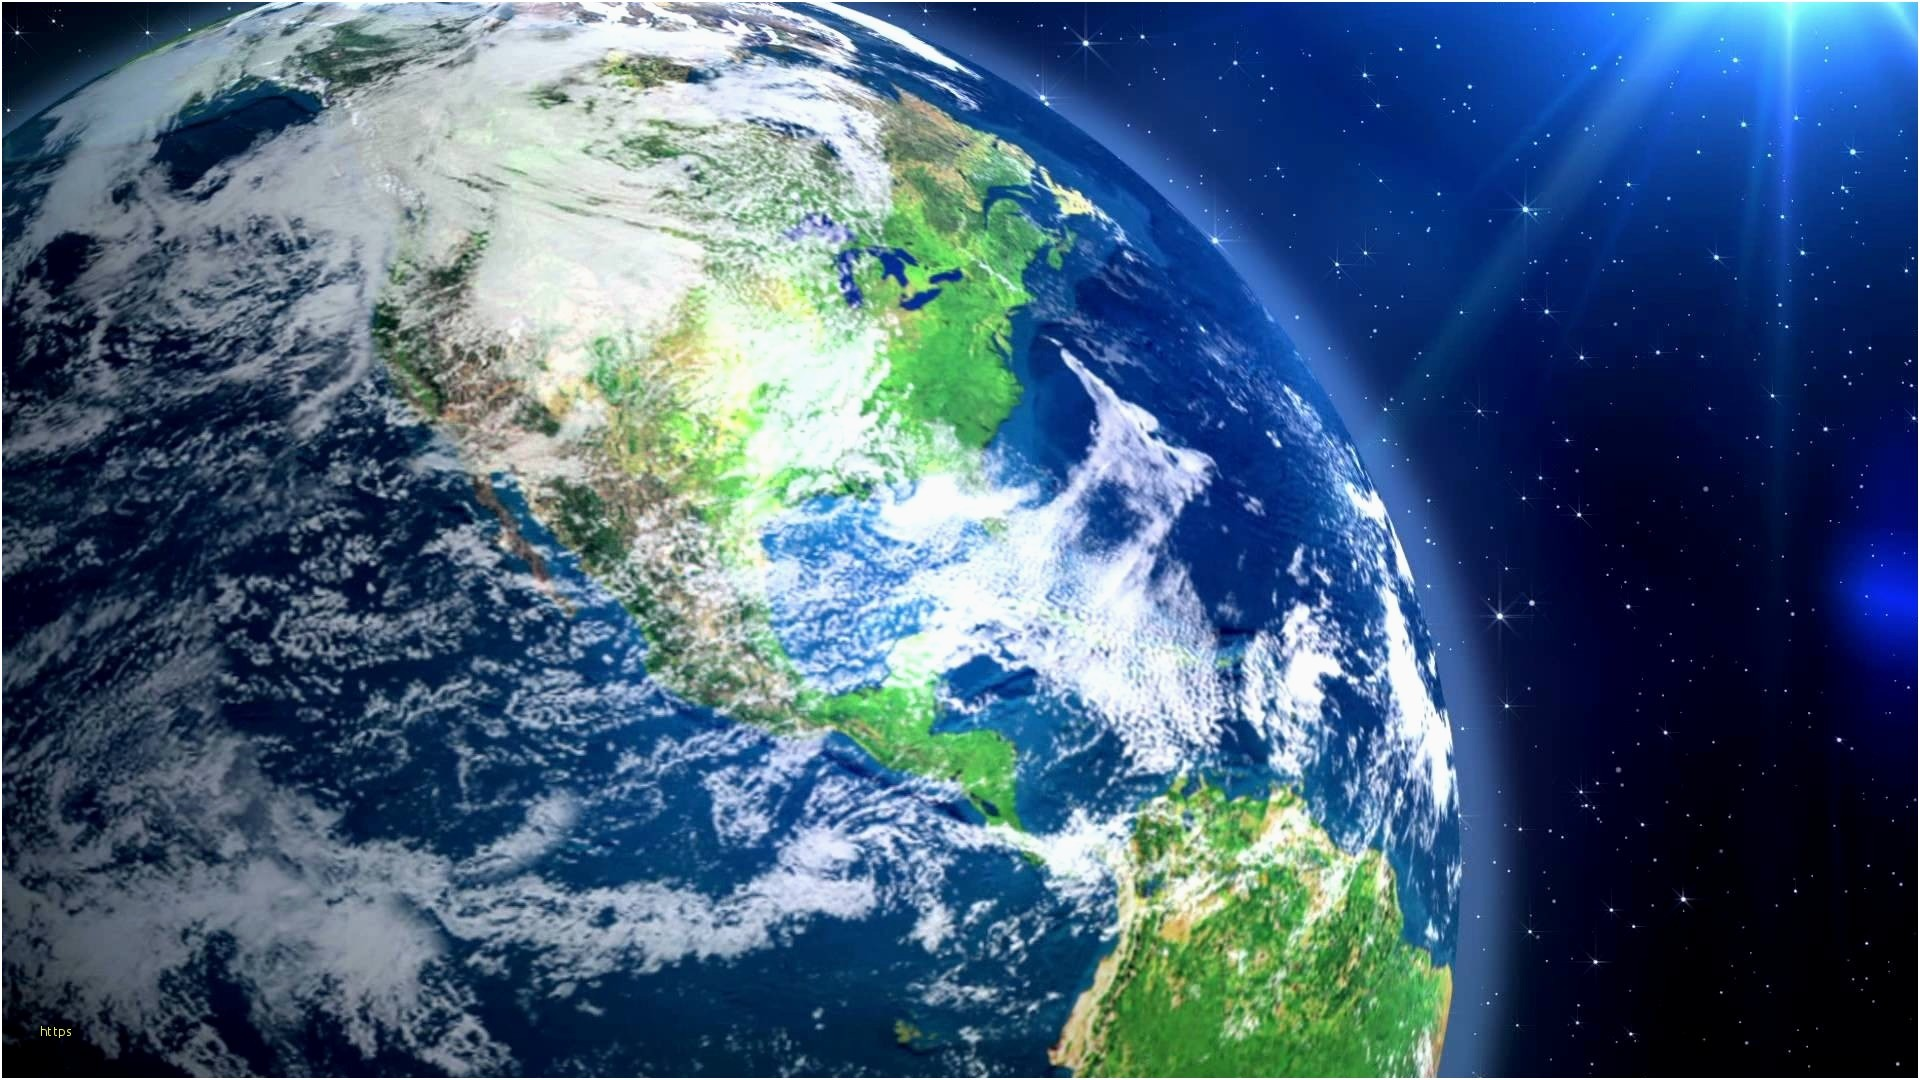 Cool Earth Backgrounds (73+ pictures)